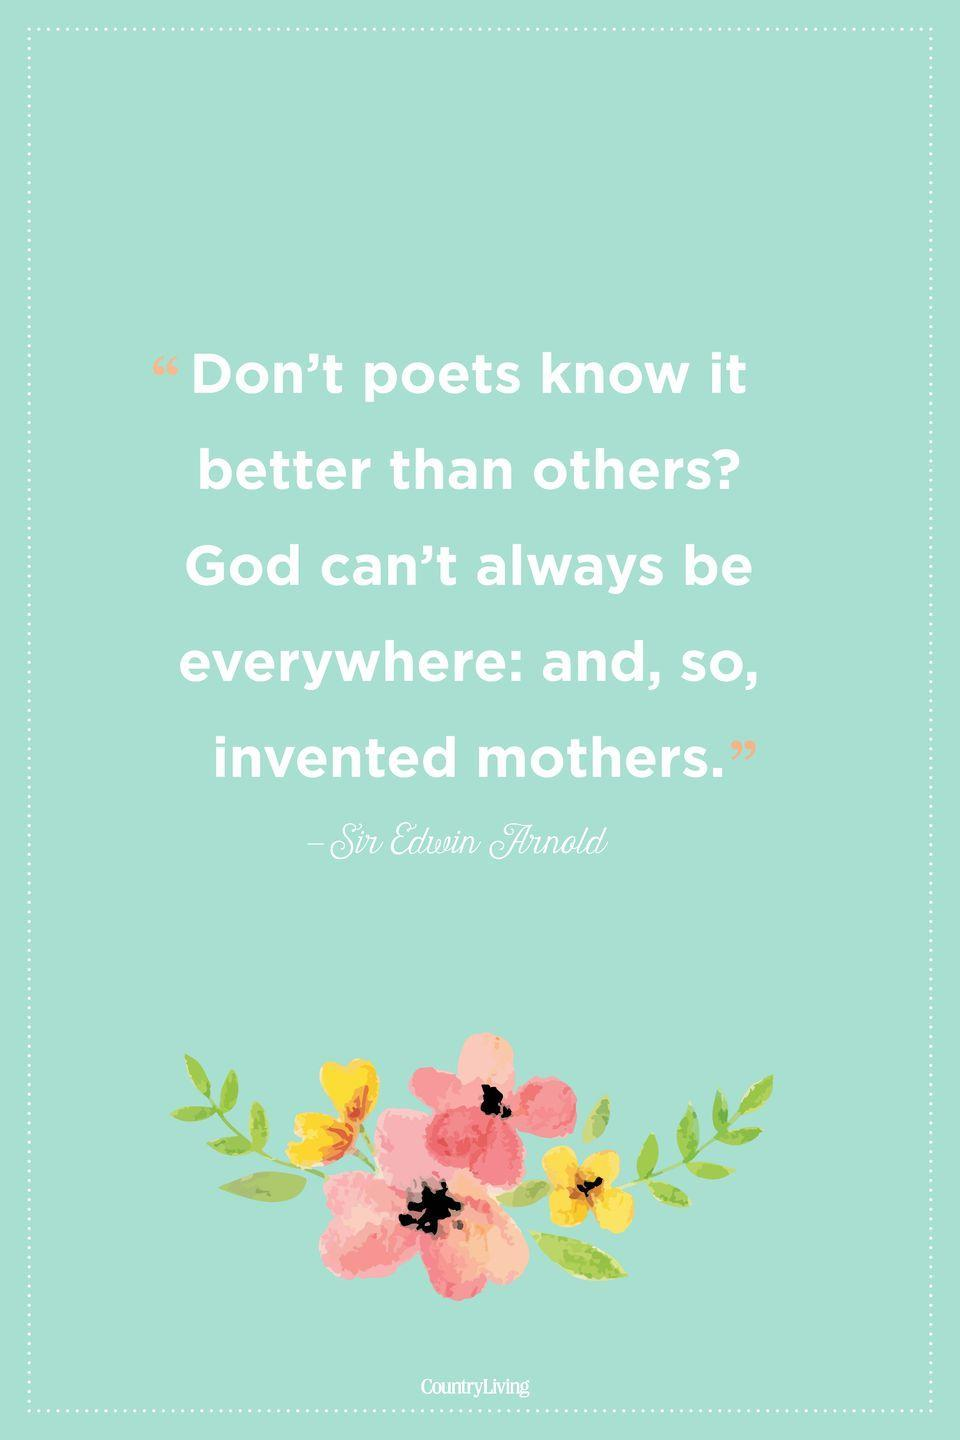 "<p>""Don't poets know it better than others? God can't always be everywhere: and, so, invented mothers."" </p><p><strong>RELATED: </strong><a href=""https://www.countryliving.com/life/g3077/spring-quotes/"" rel=""nofollow noopener"" target=""_blank"" data-ylk=""slk:Beautiful Spring Quotes That Will Make You Smile"" class=""link rapid-noclick-resp"">Beautiful Spring Quotes That Will Make You Smile</a><br></p>"